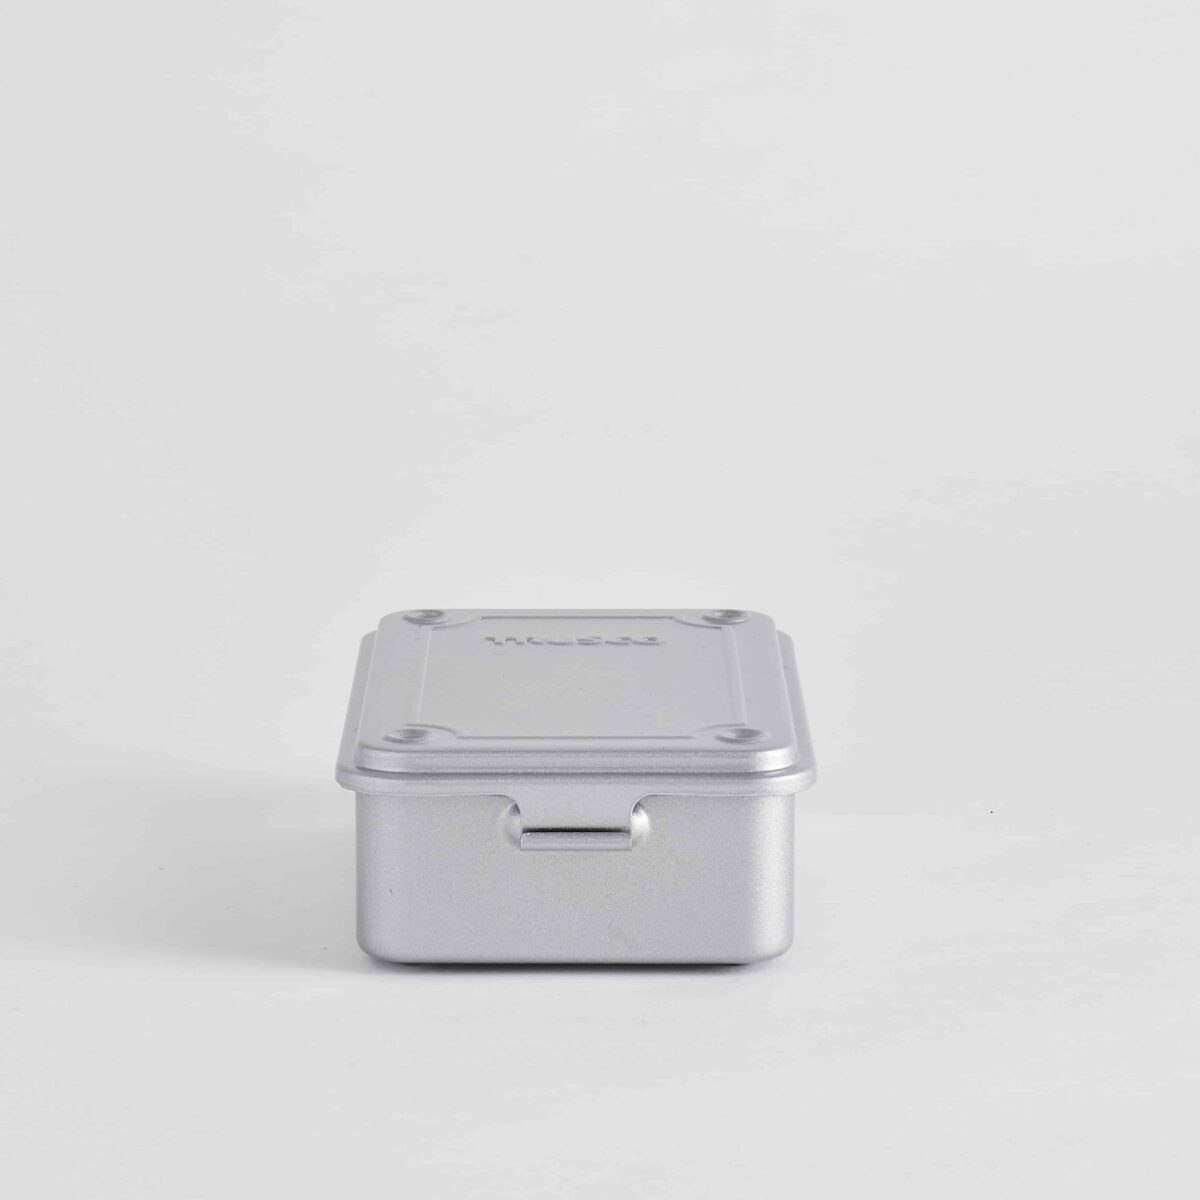 Trusco Component Box Silver Small – Another-Country-Photo Credit Yeshen Venema -21.11.185315